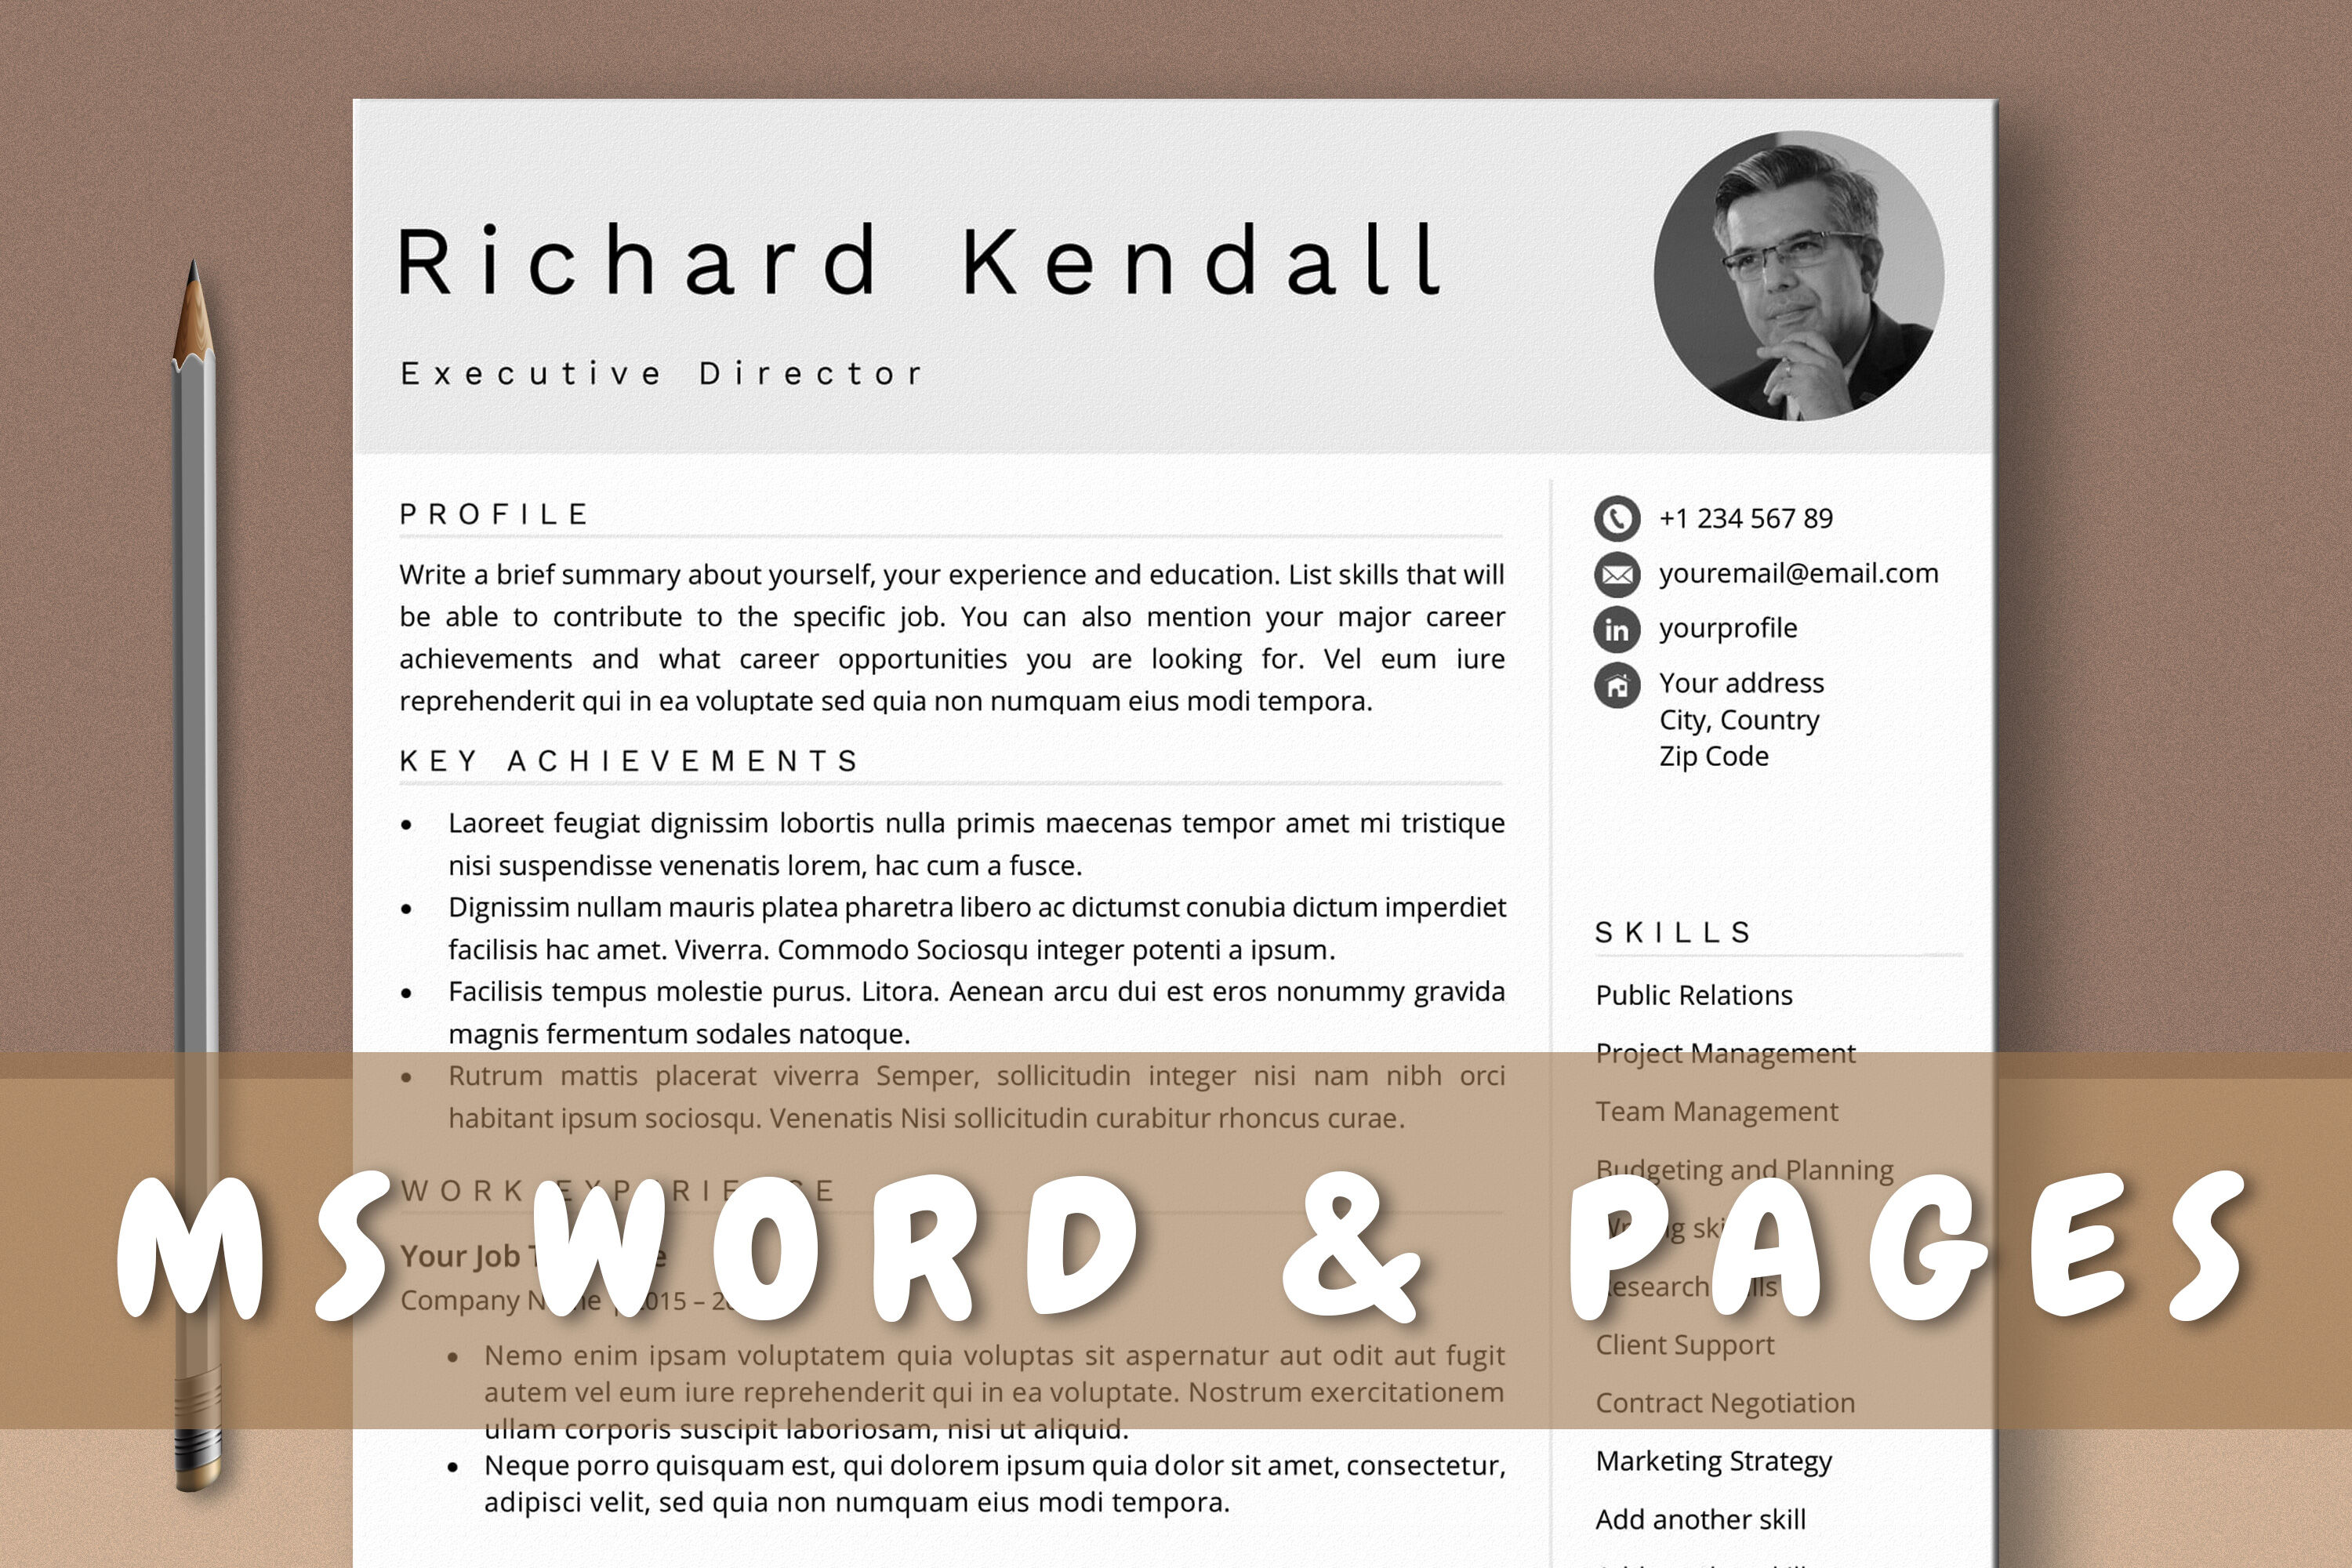 Combination Resume Template with Photo for Word & Pages By Regarding Combination Resume Template Word